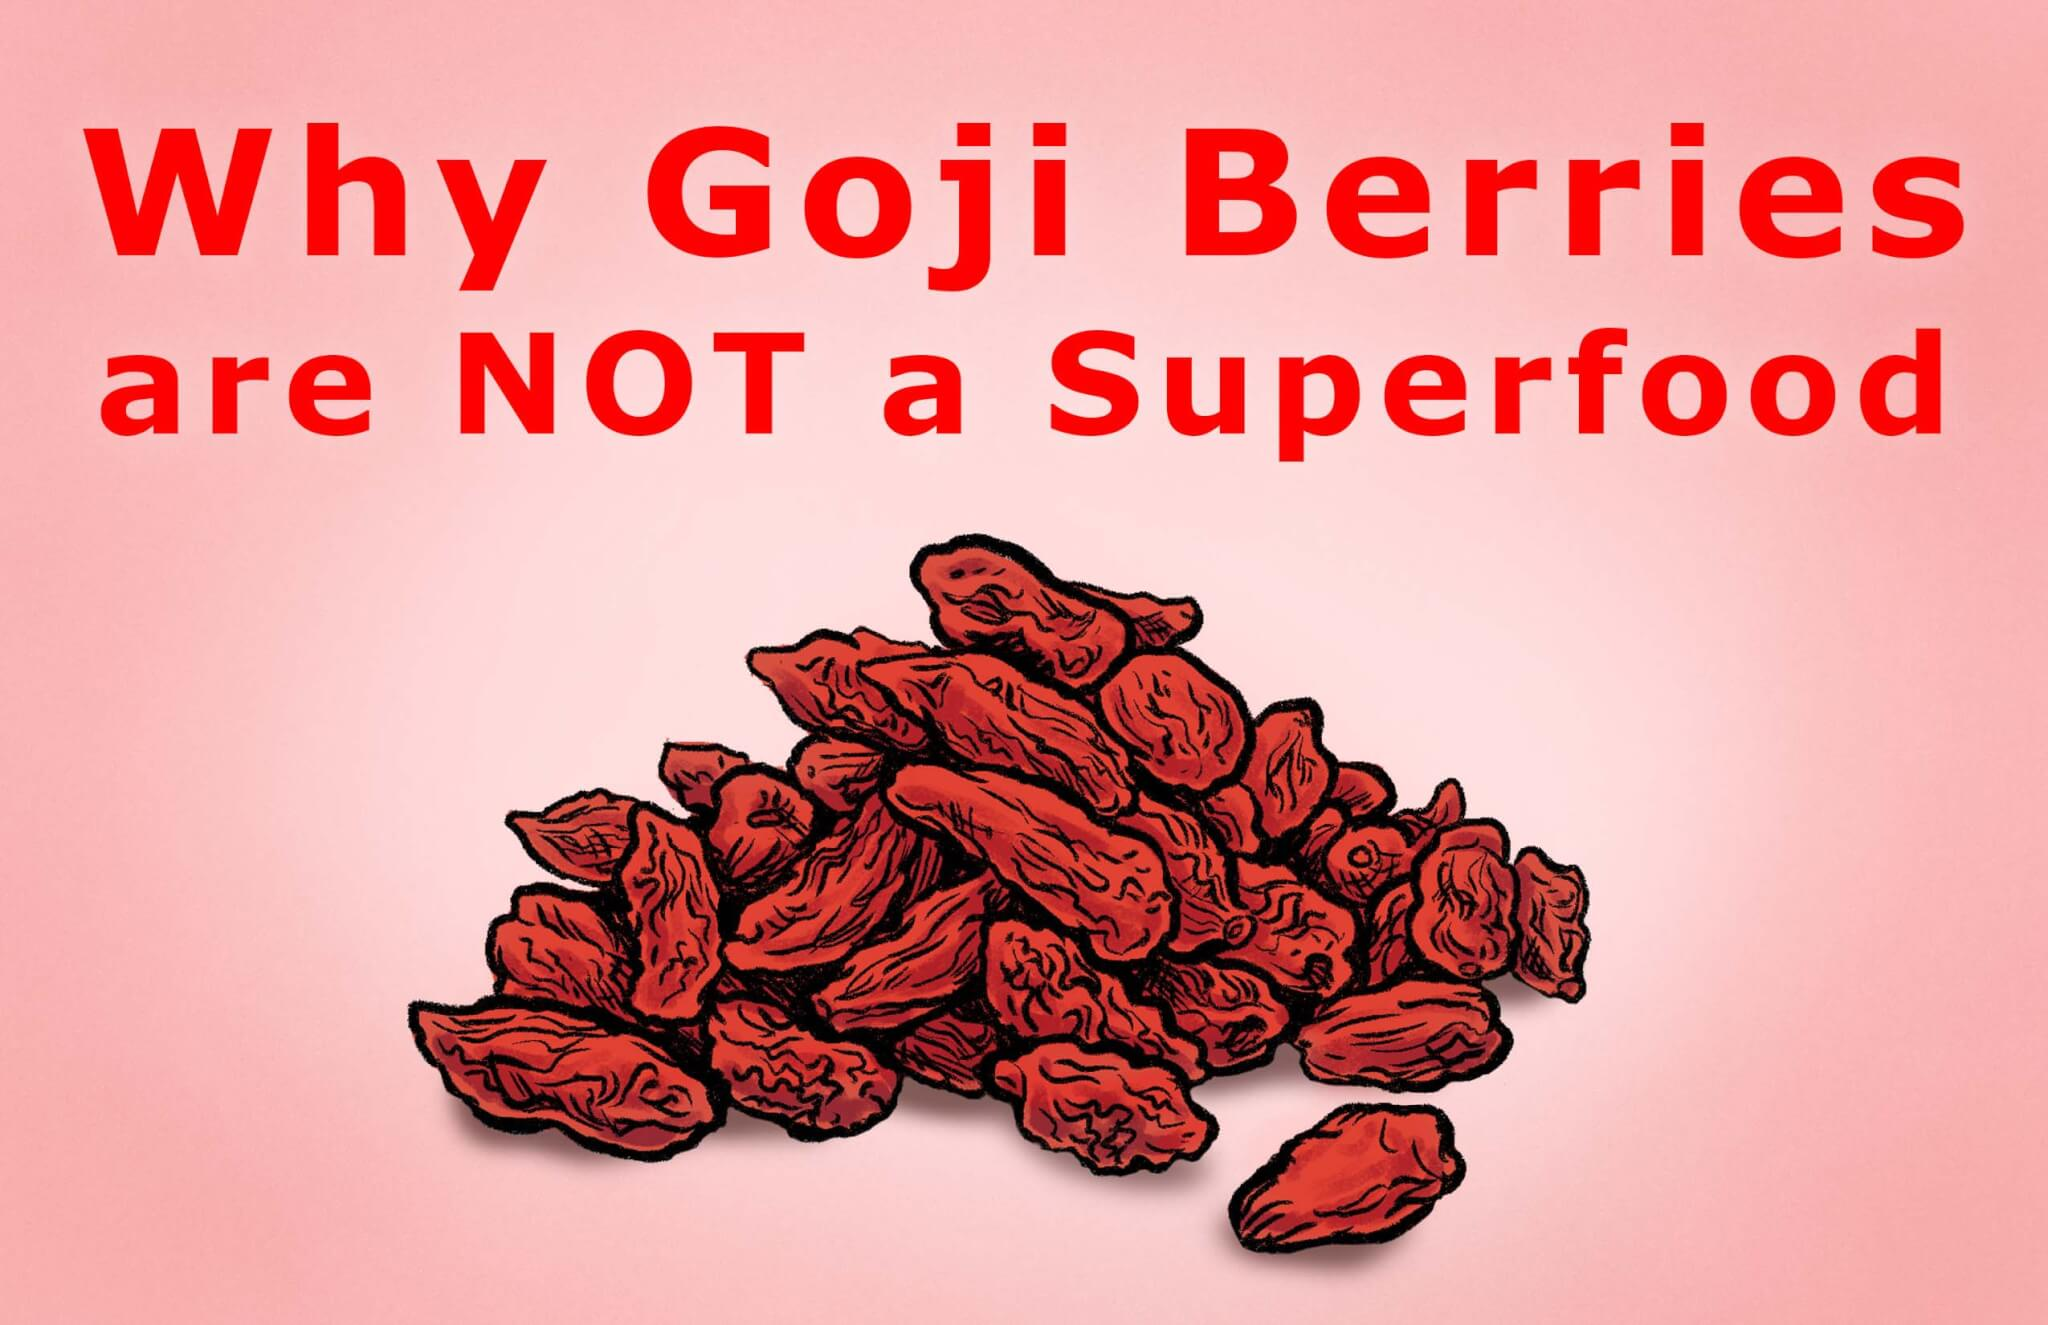 Why You Should Avoid Goji Berries At All Costs [VIDEO]